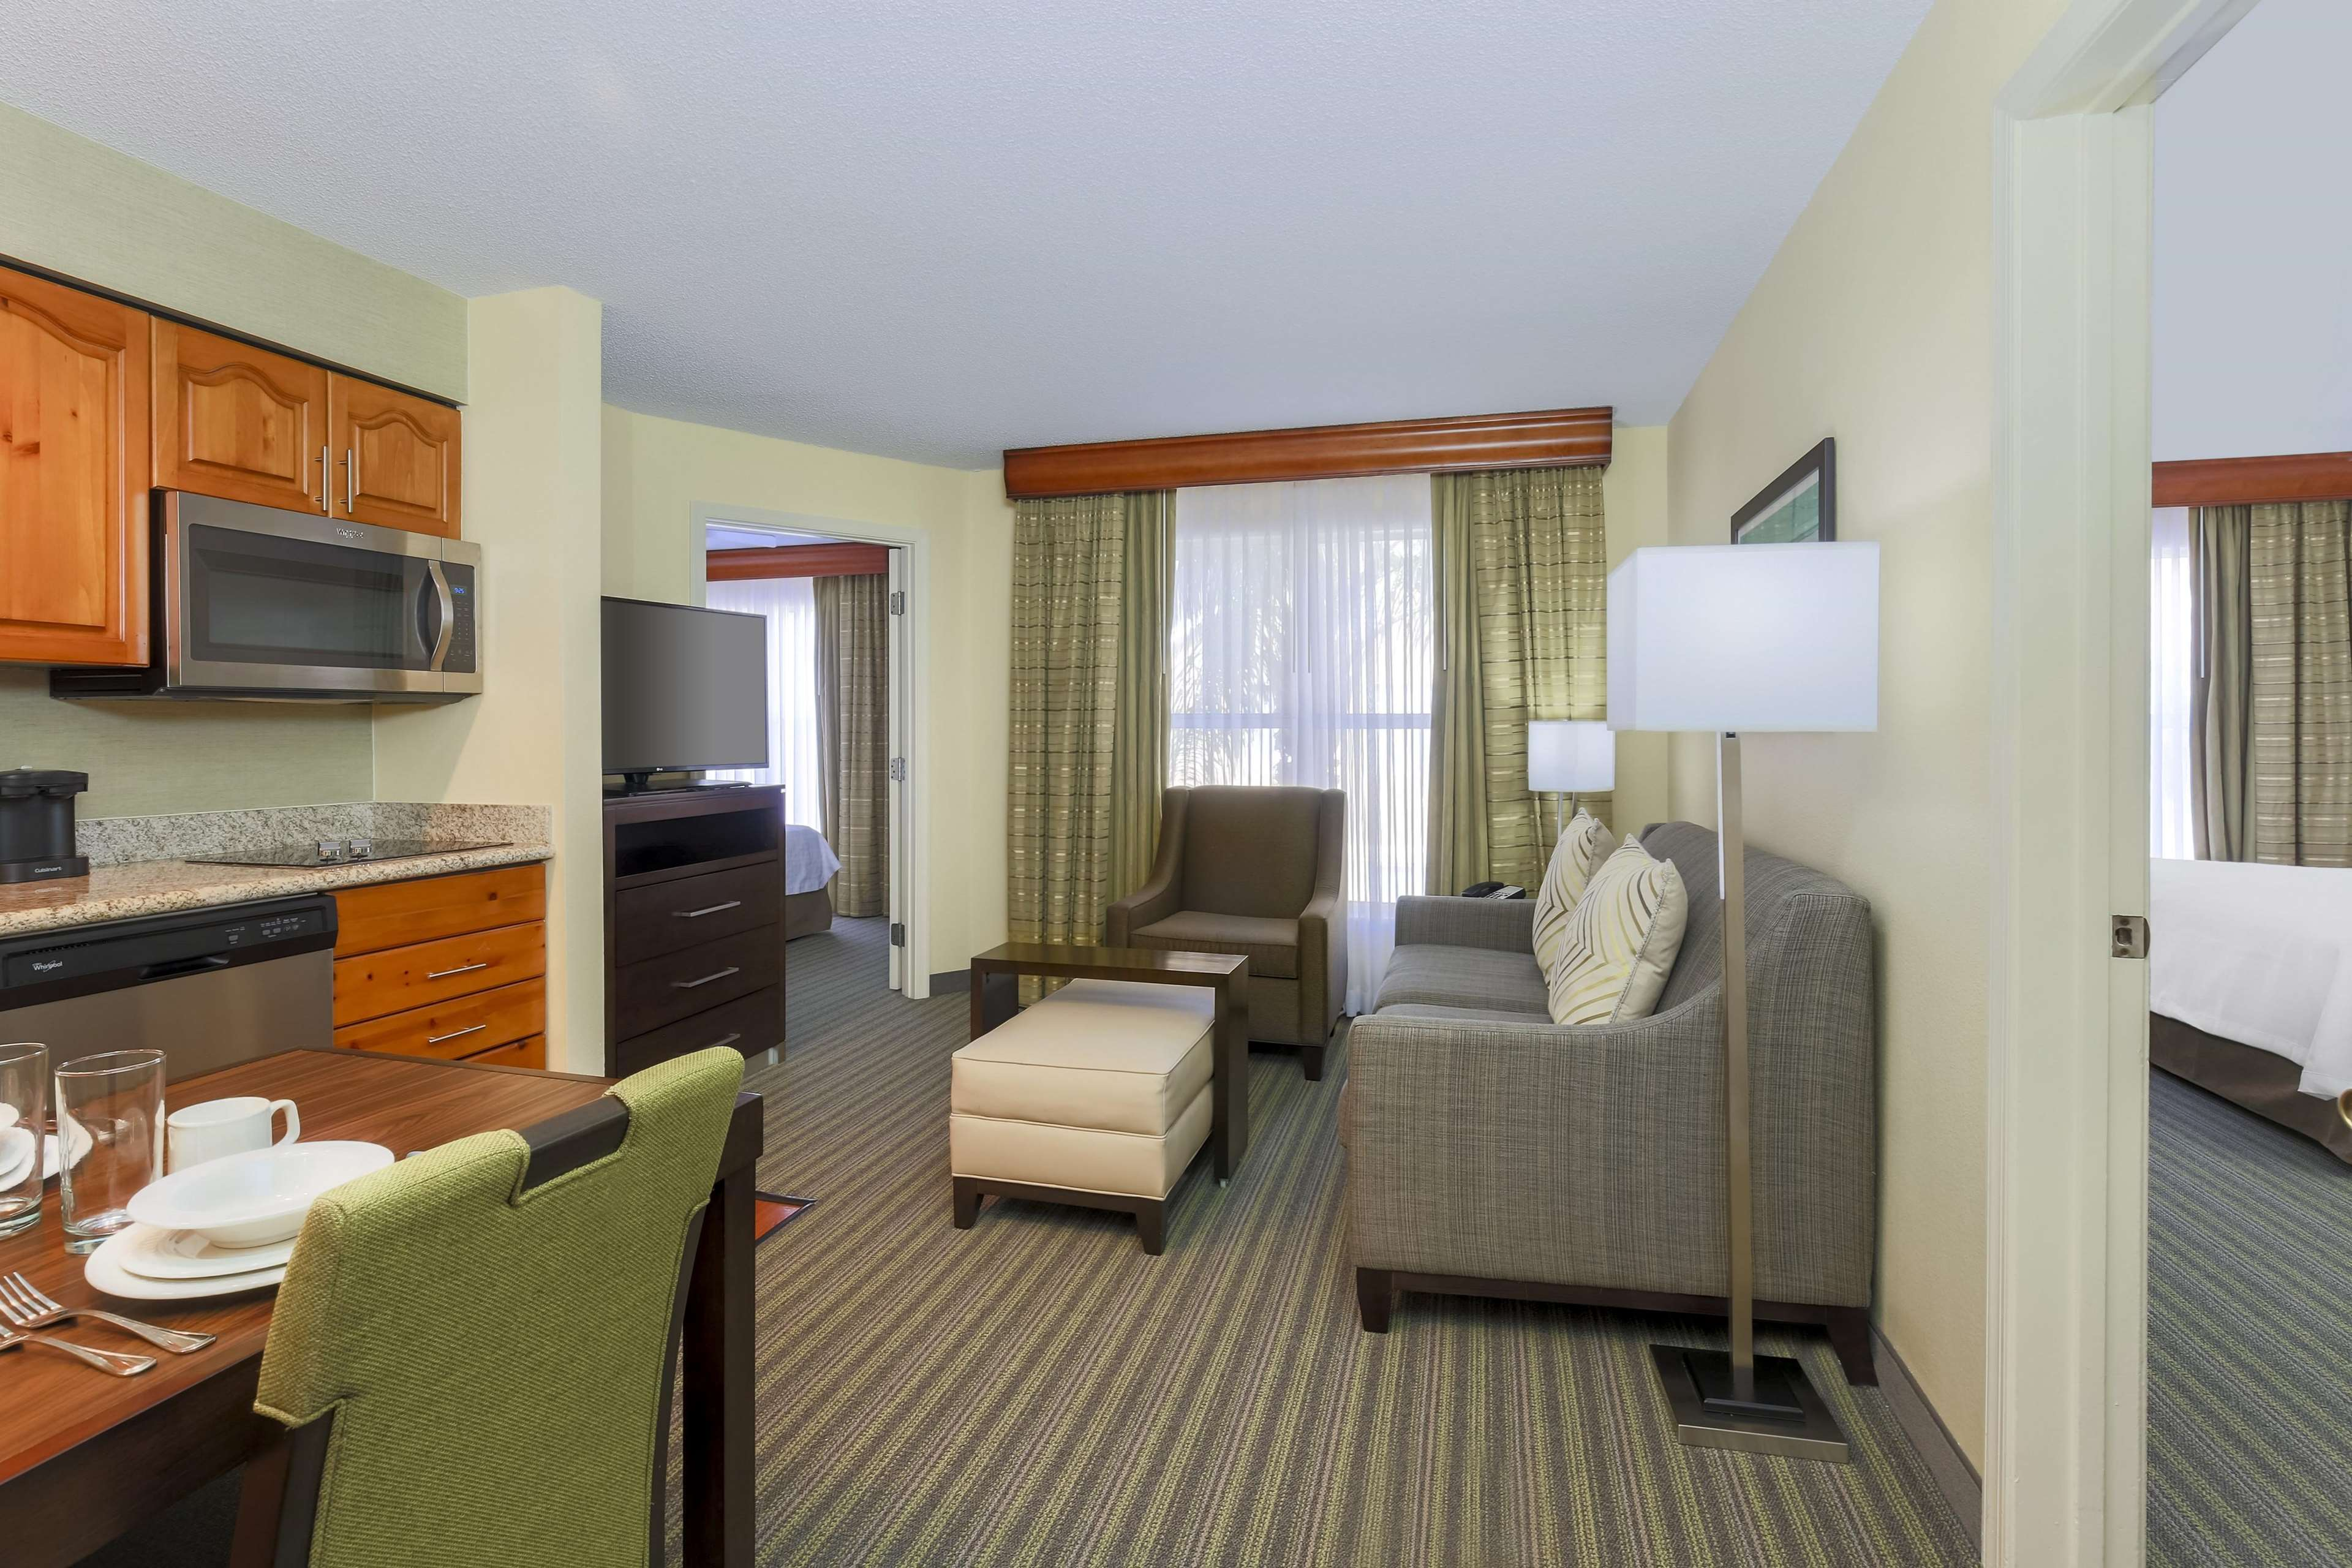 Homewood Suites by Hilton St. Petersburg Clearwater image 4